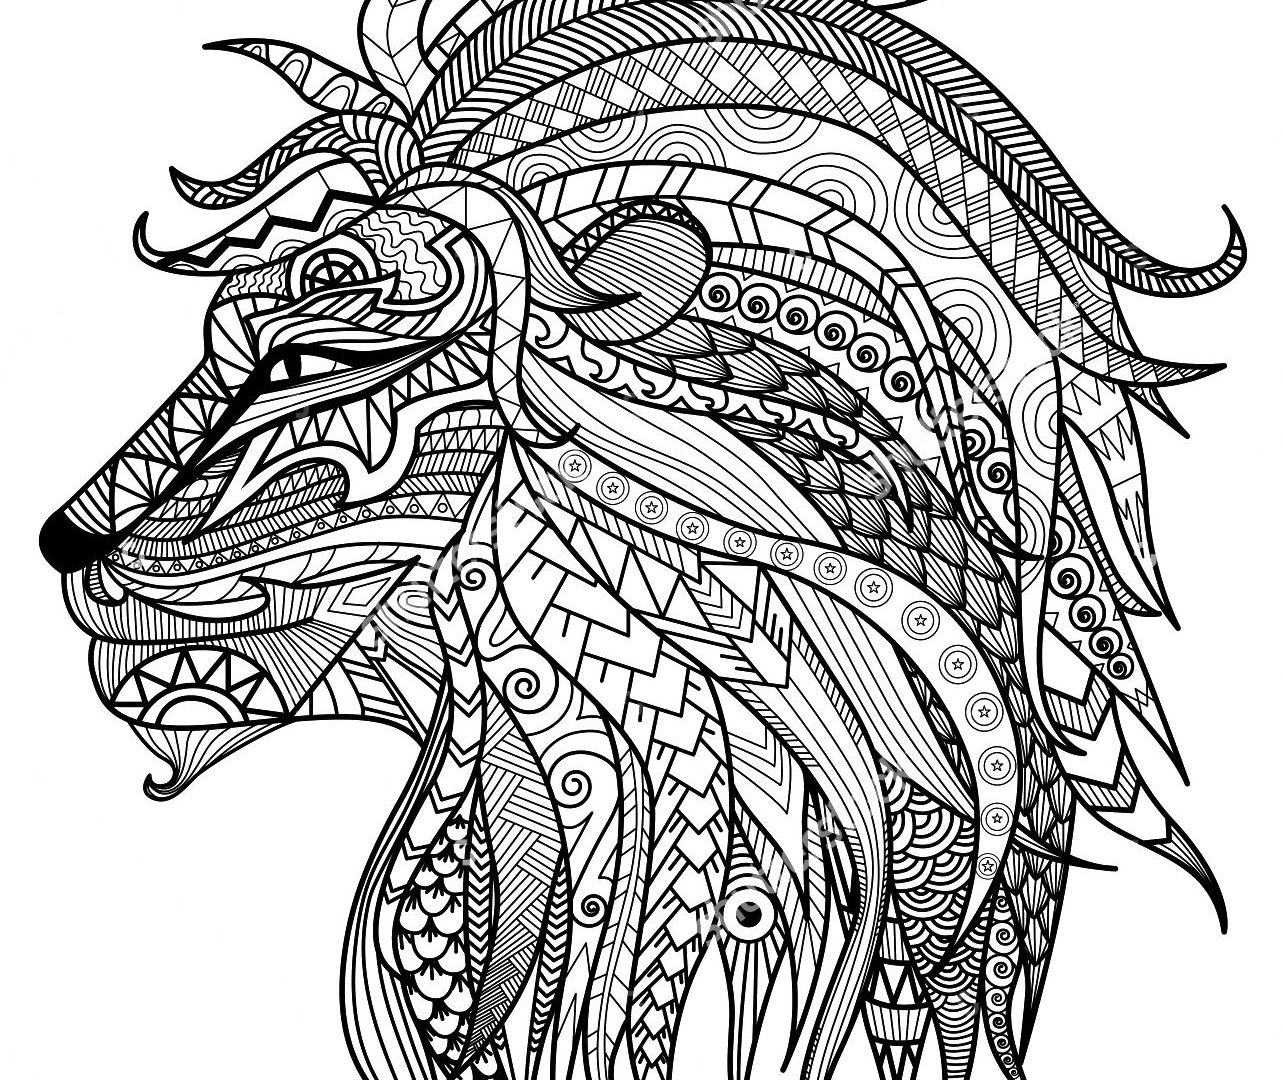 1283x1080 Lions Coloring Pages Free Lion Printable Animals To Print Sheets